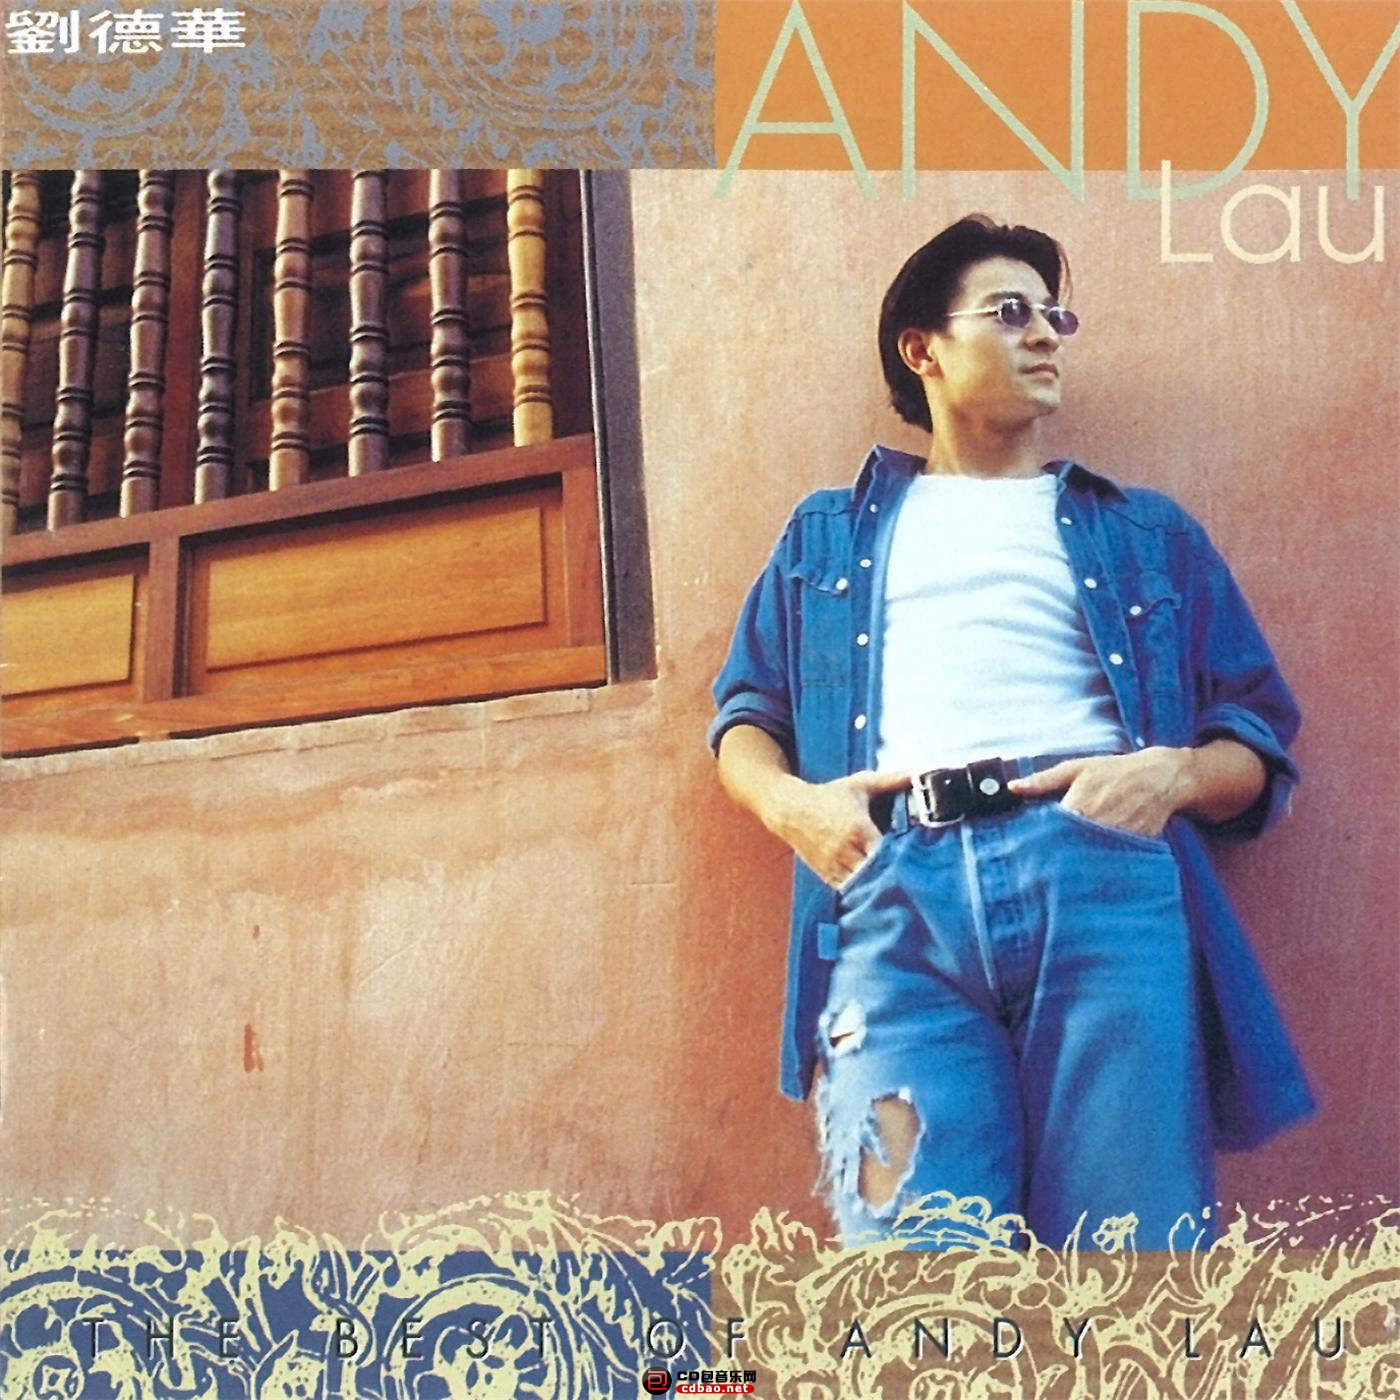 The Best of Andy Lau.jpg